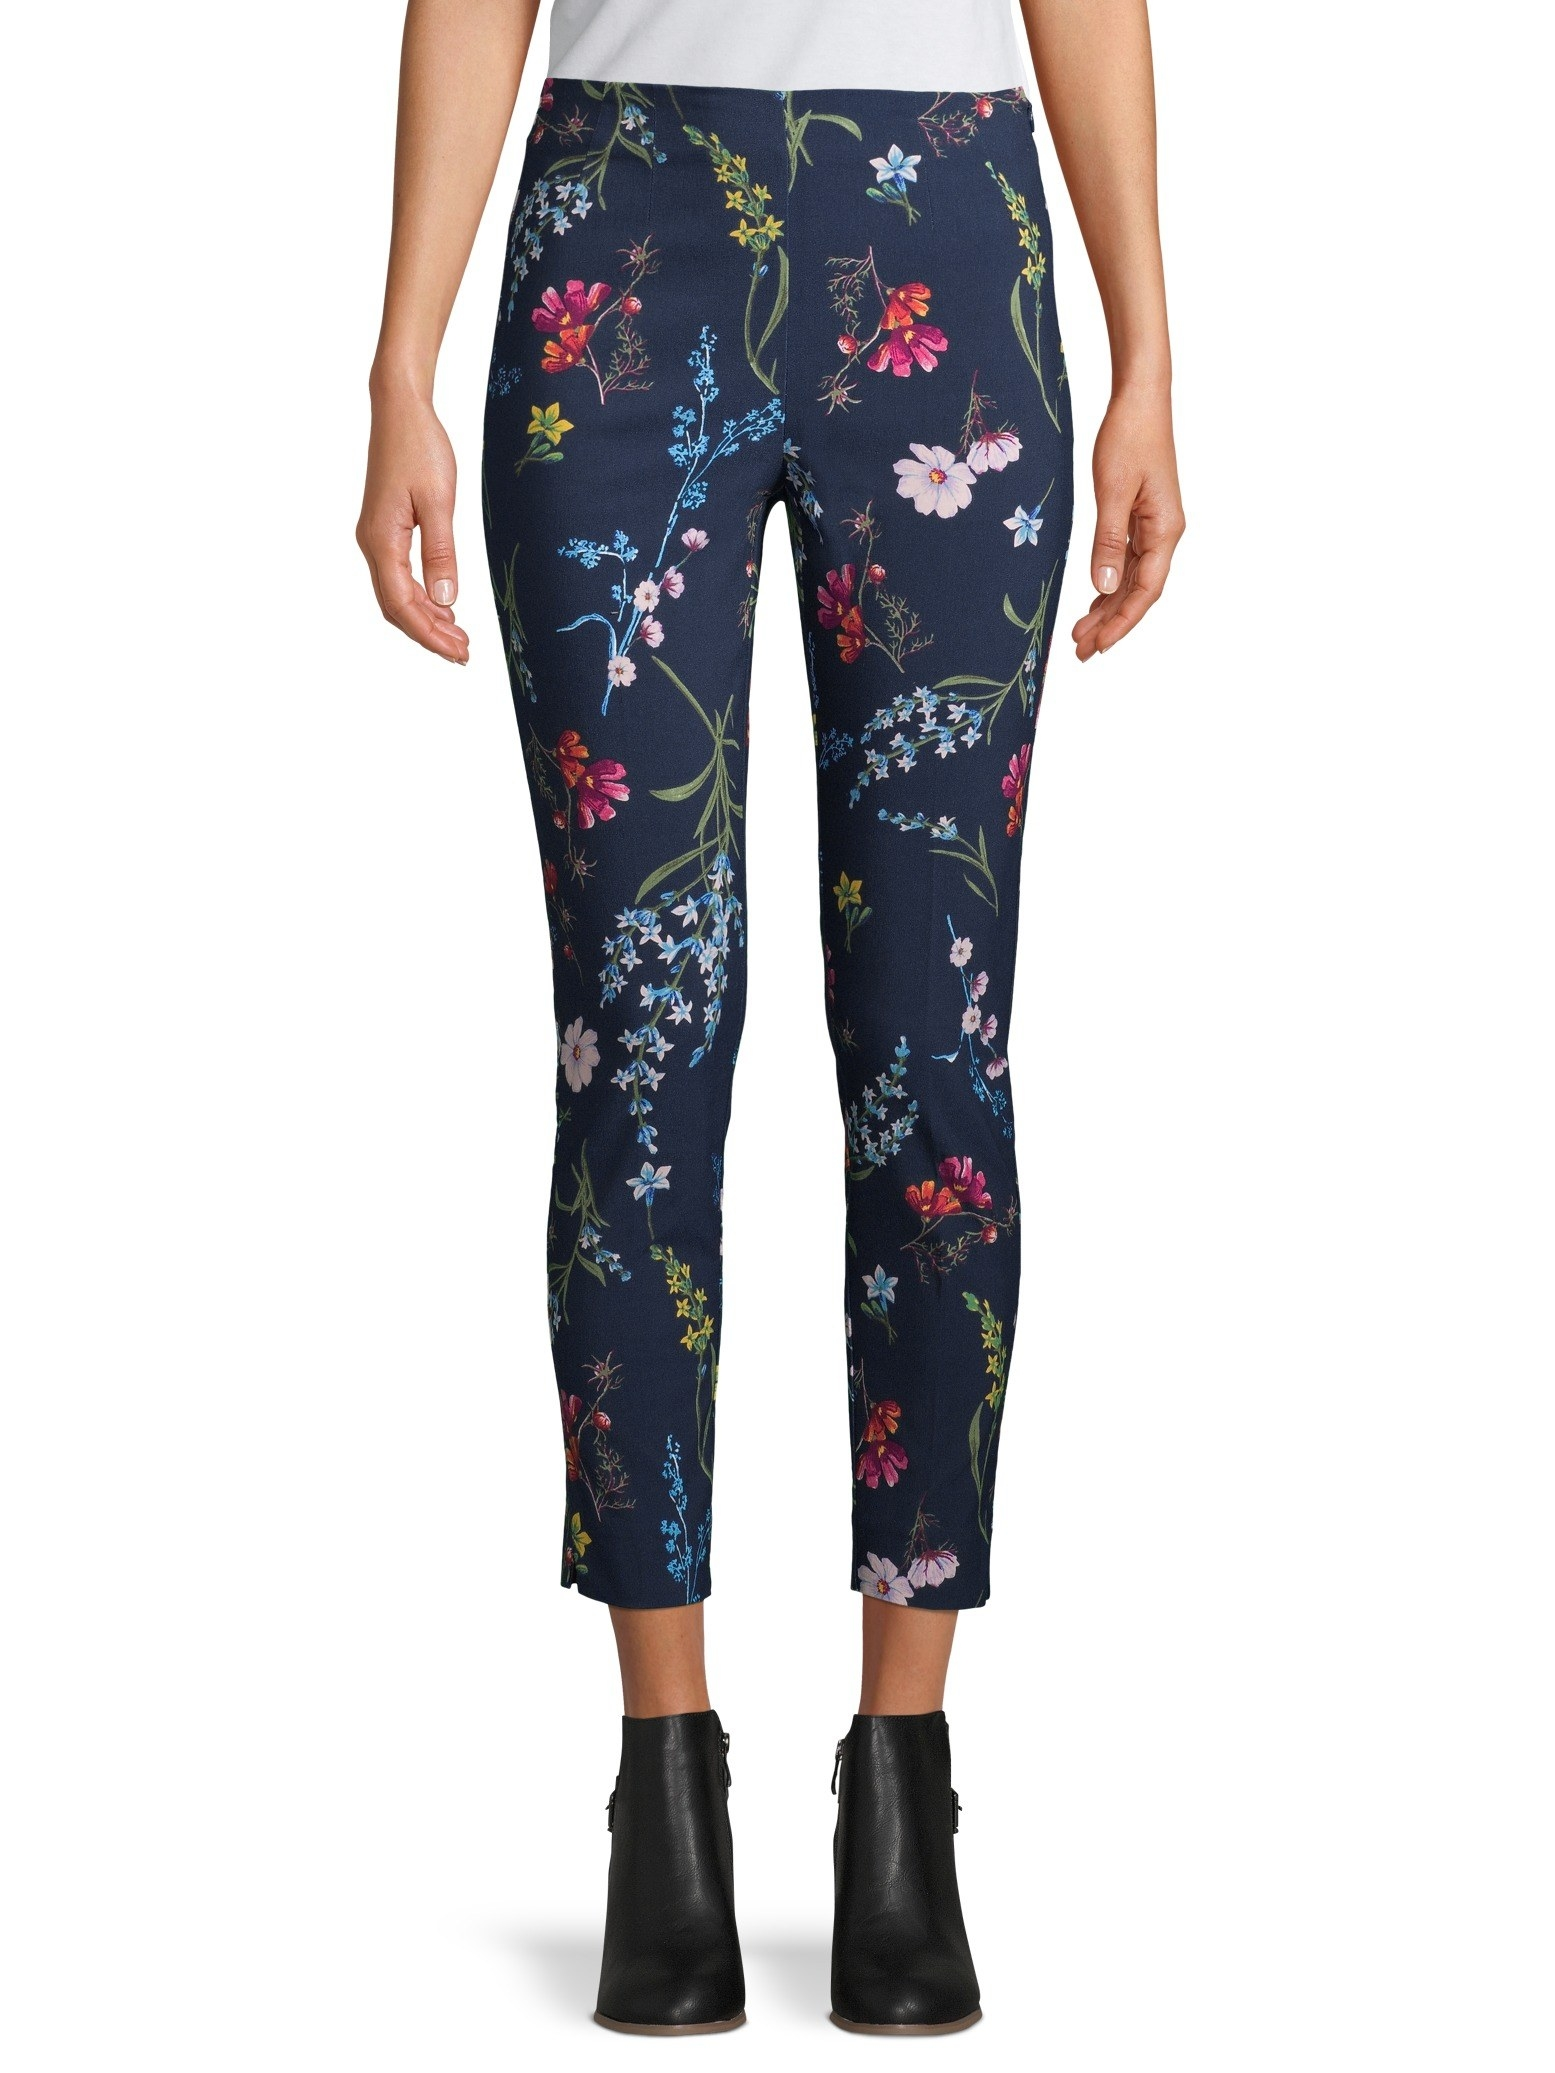 Pants with florals